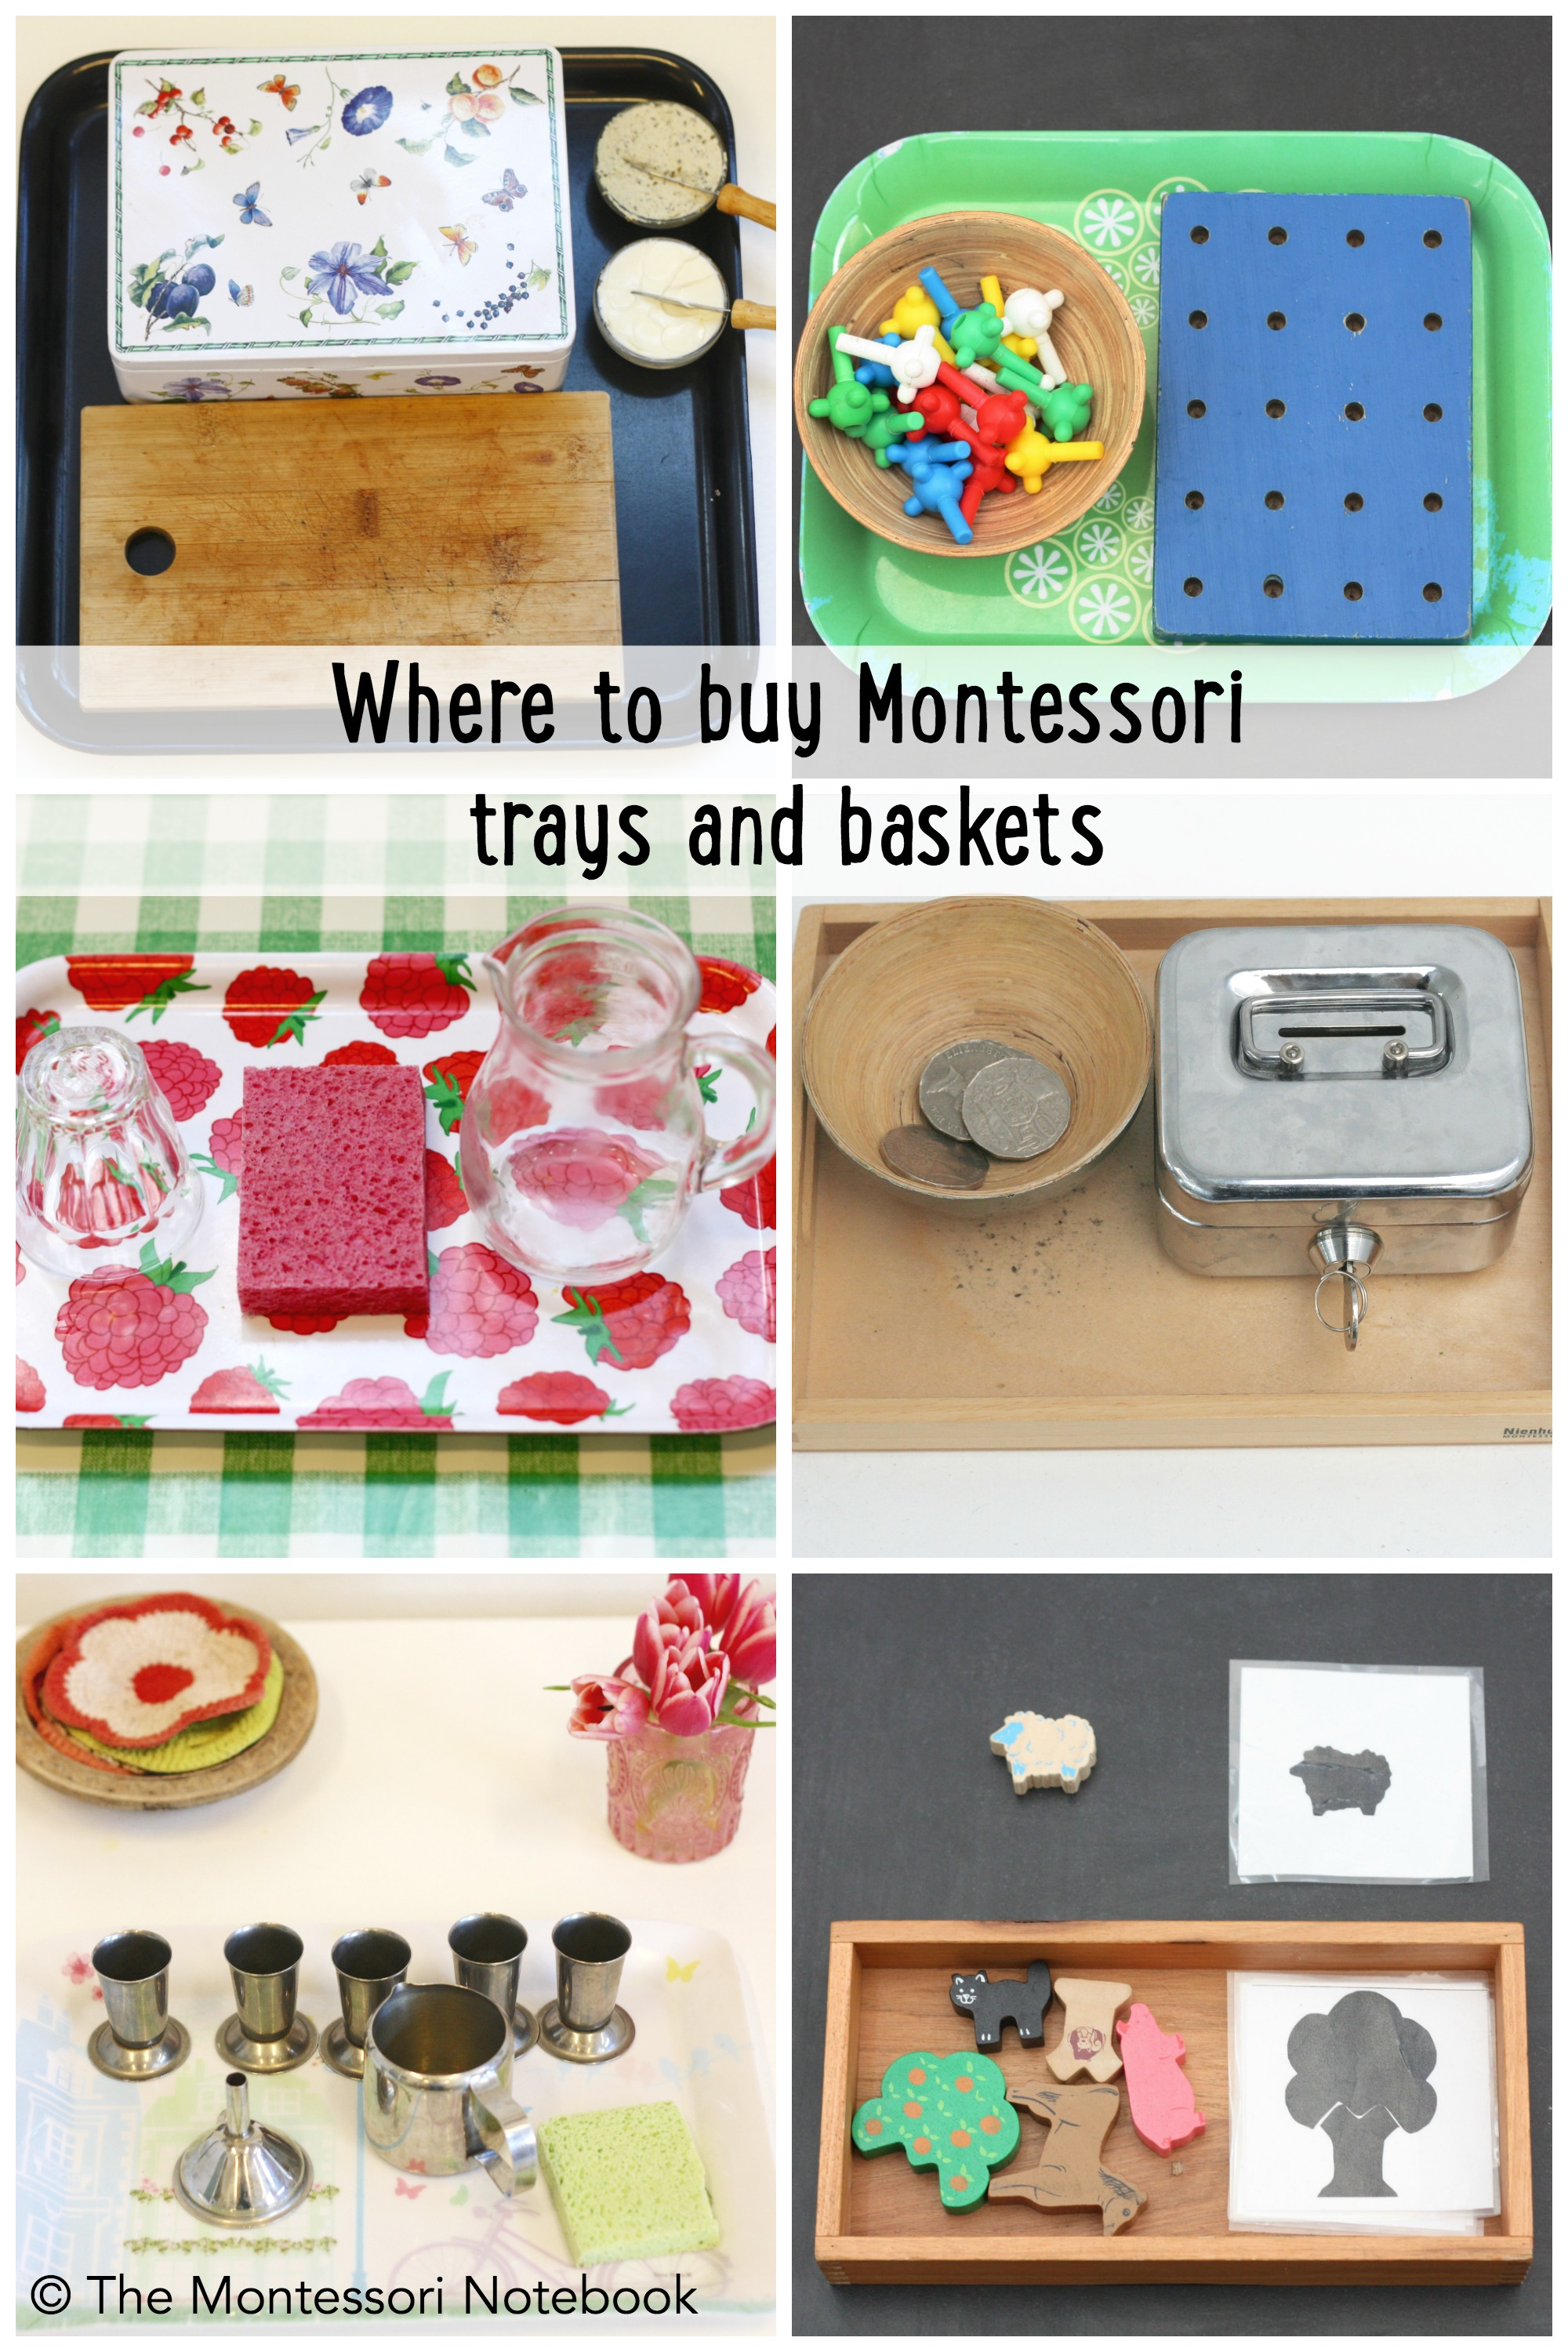 where to find Montessori baskets and trays::The Montessori Notebook